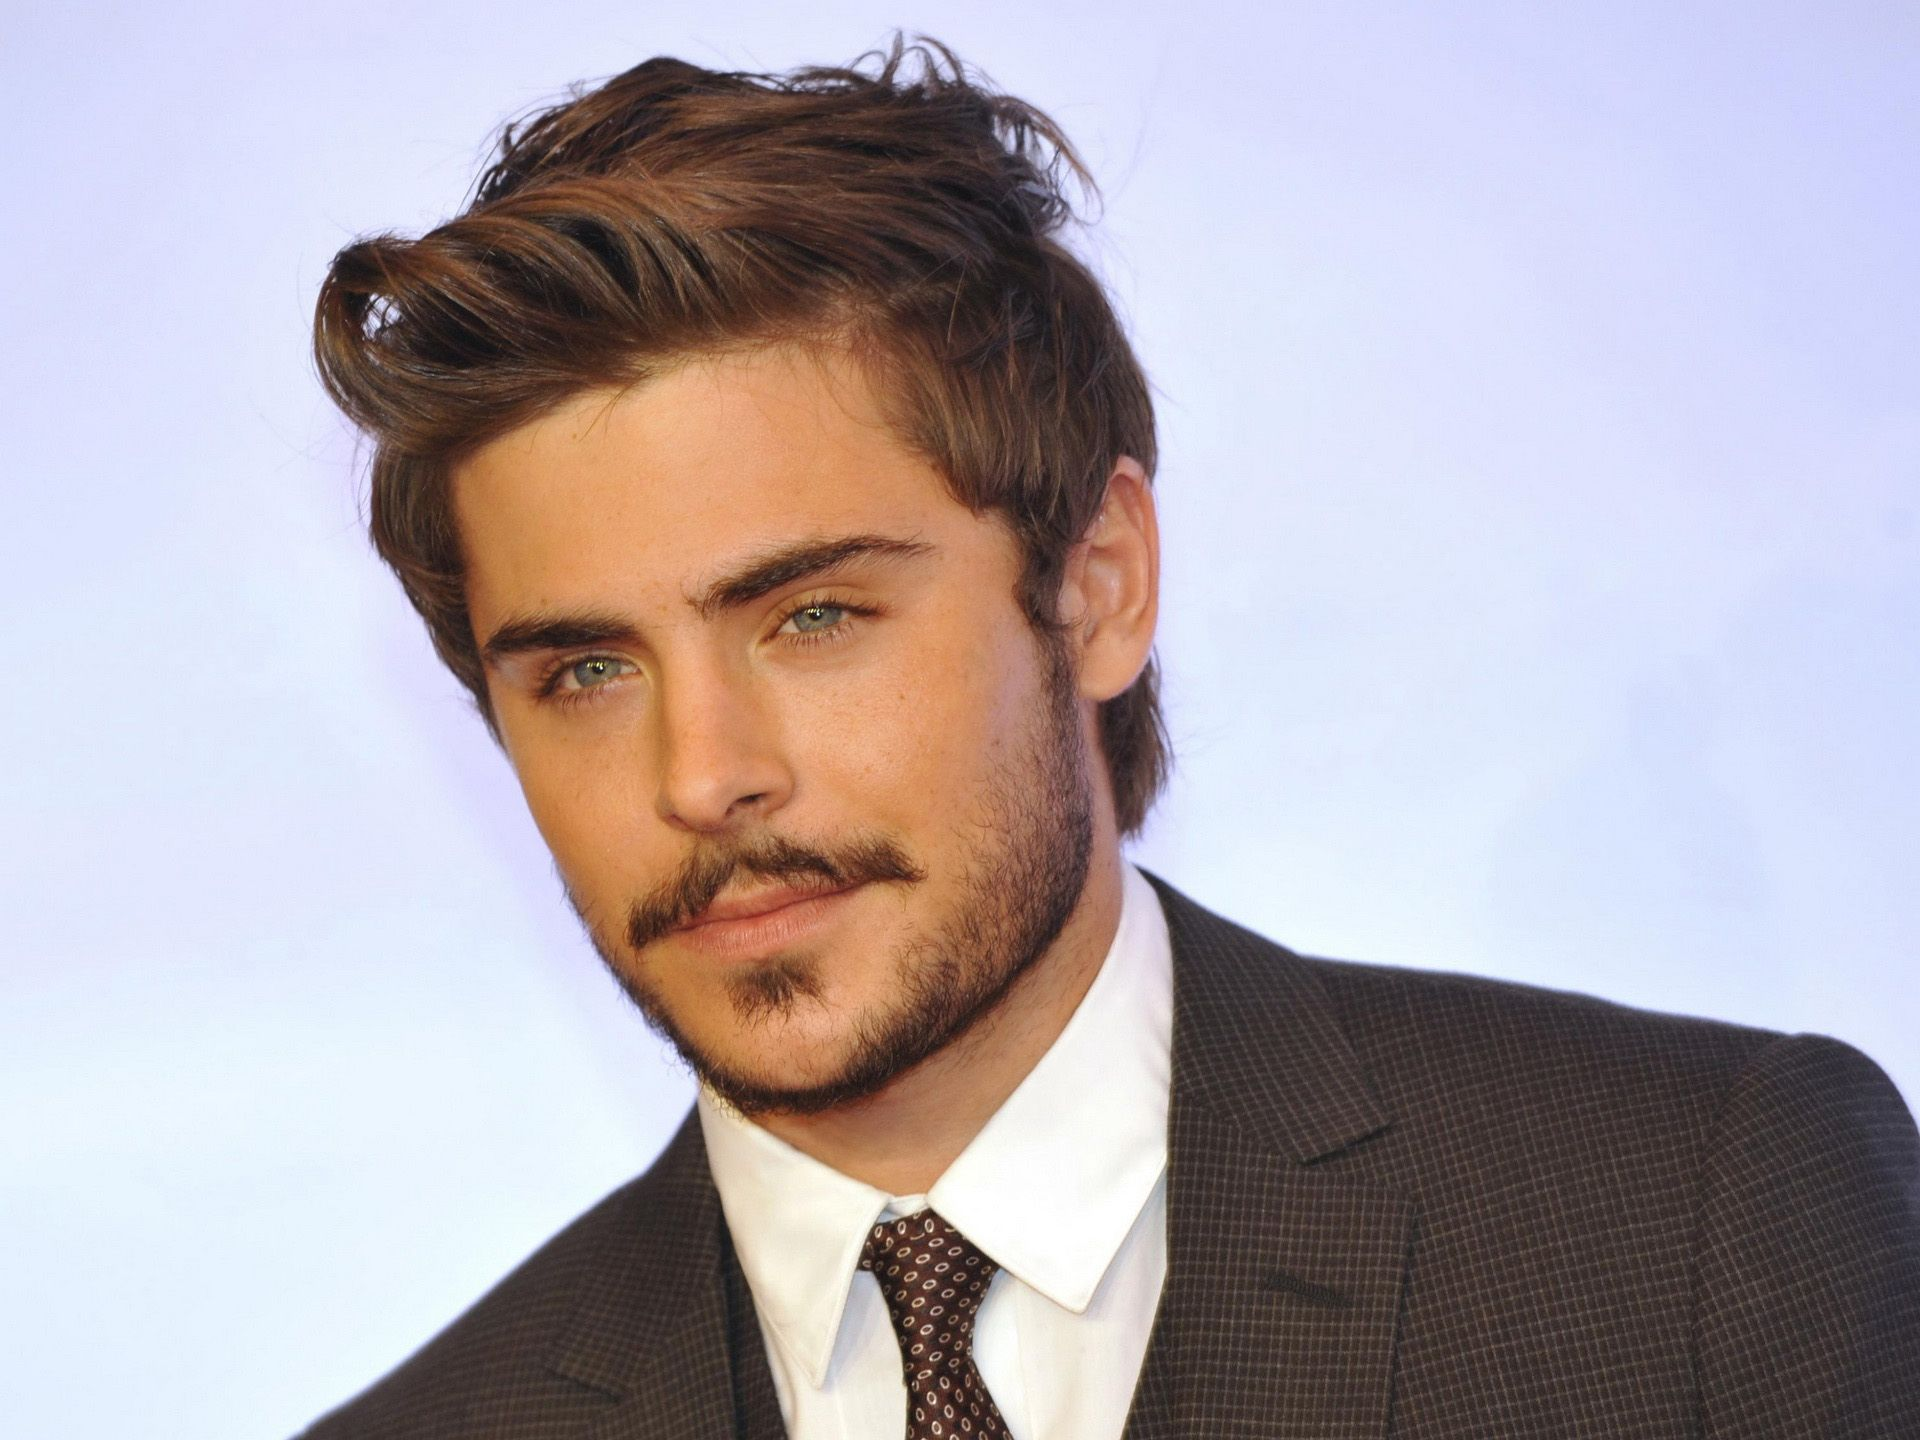 Zac Efron HD Wallpapers | Hd Wallpapers